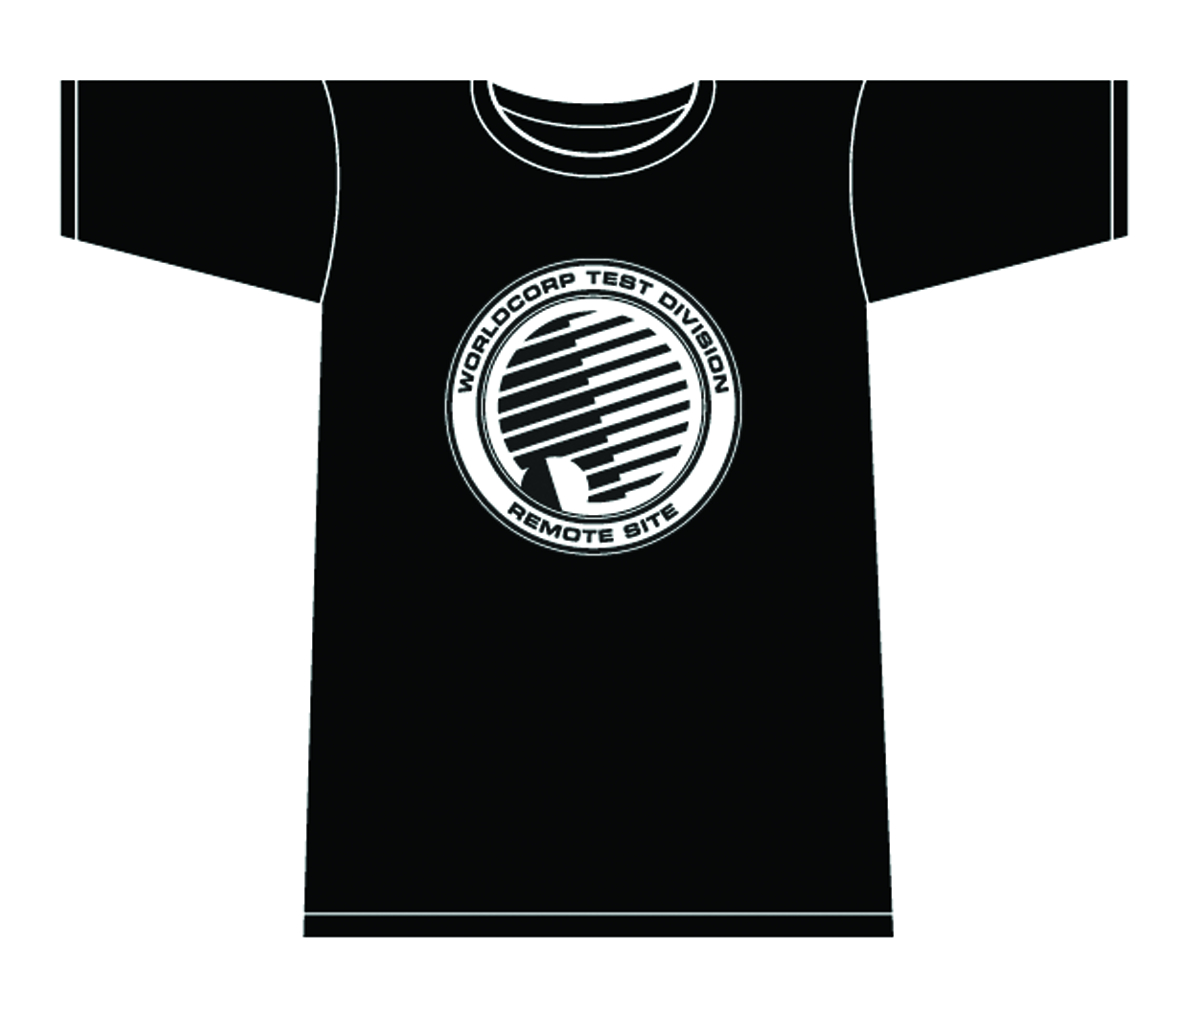 NOWHERE MEN WORLD CORP TEST DIVISION T/S BLK WOMENS MED